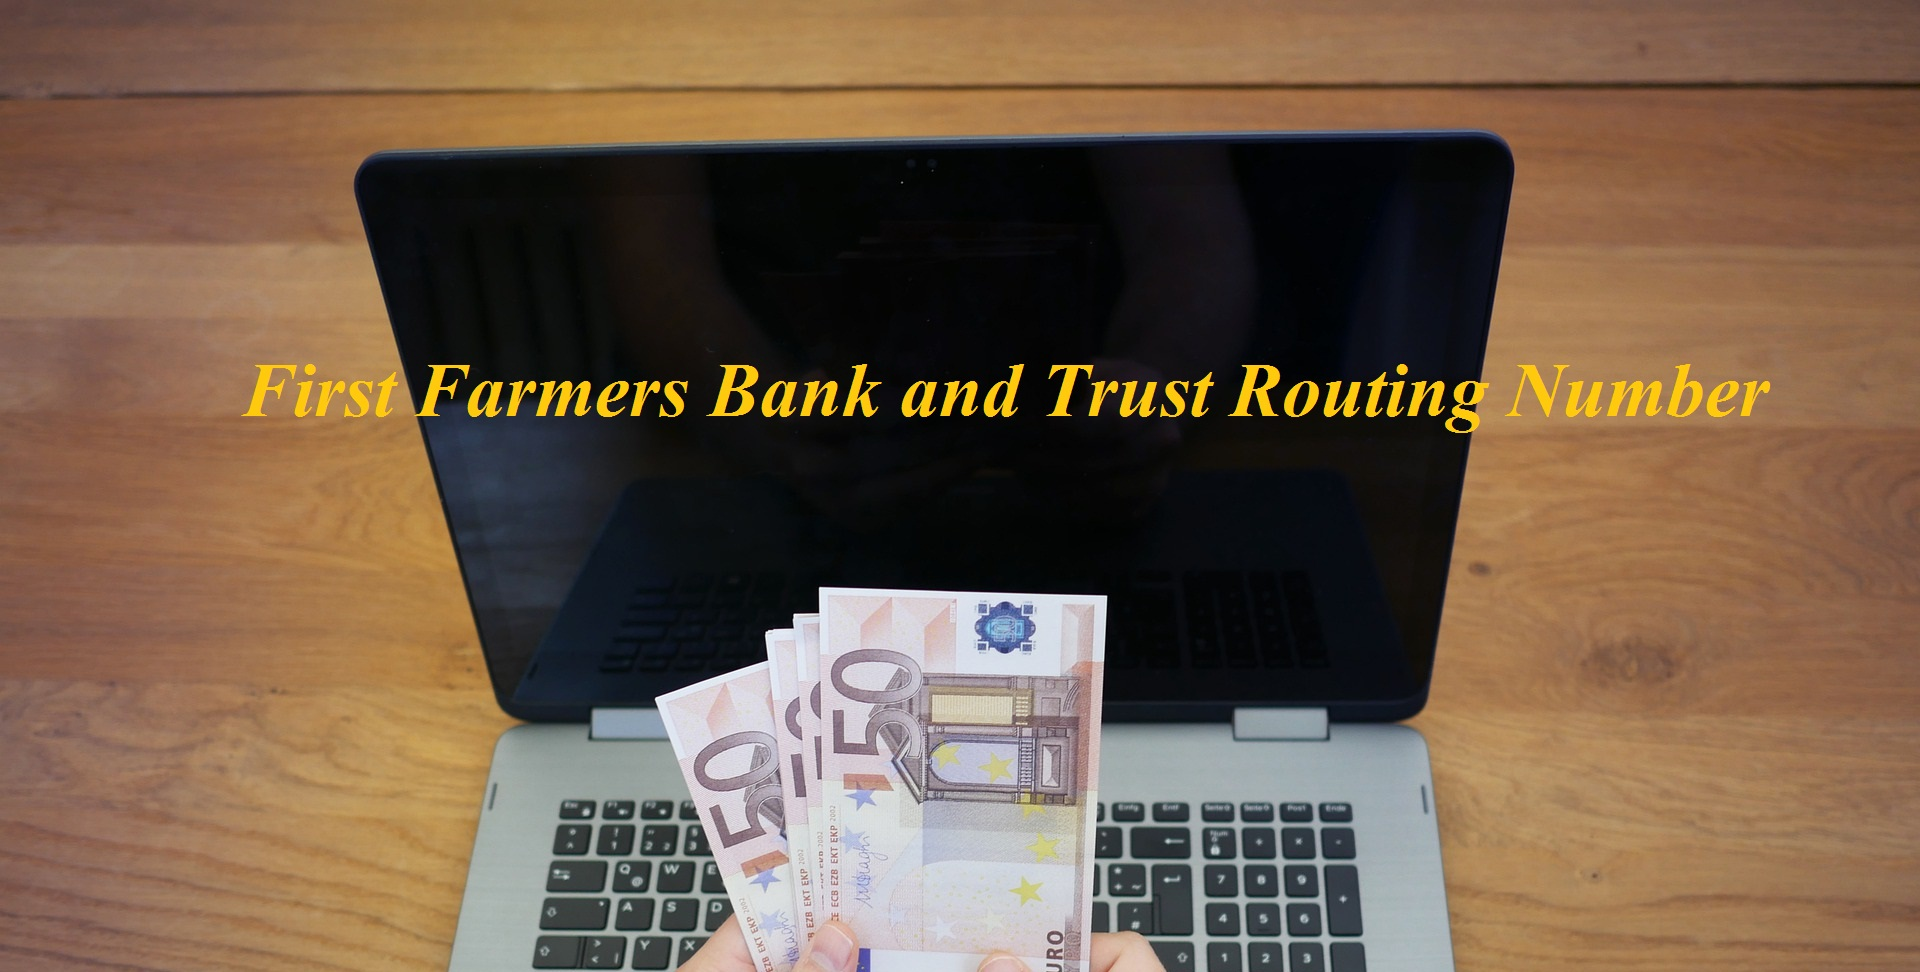 First Farmers Bank and Trust Routing Number